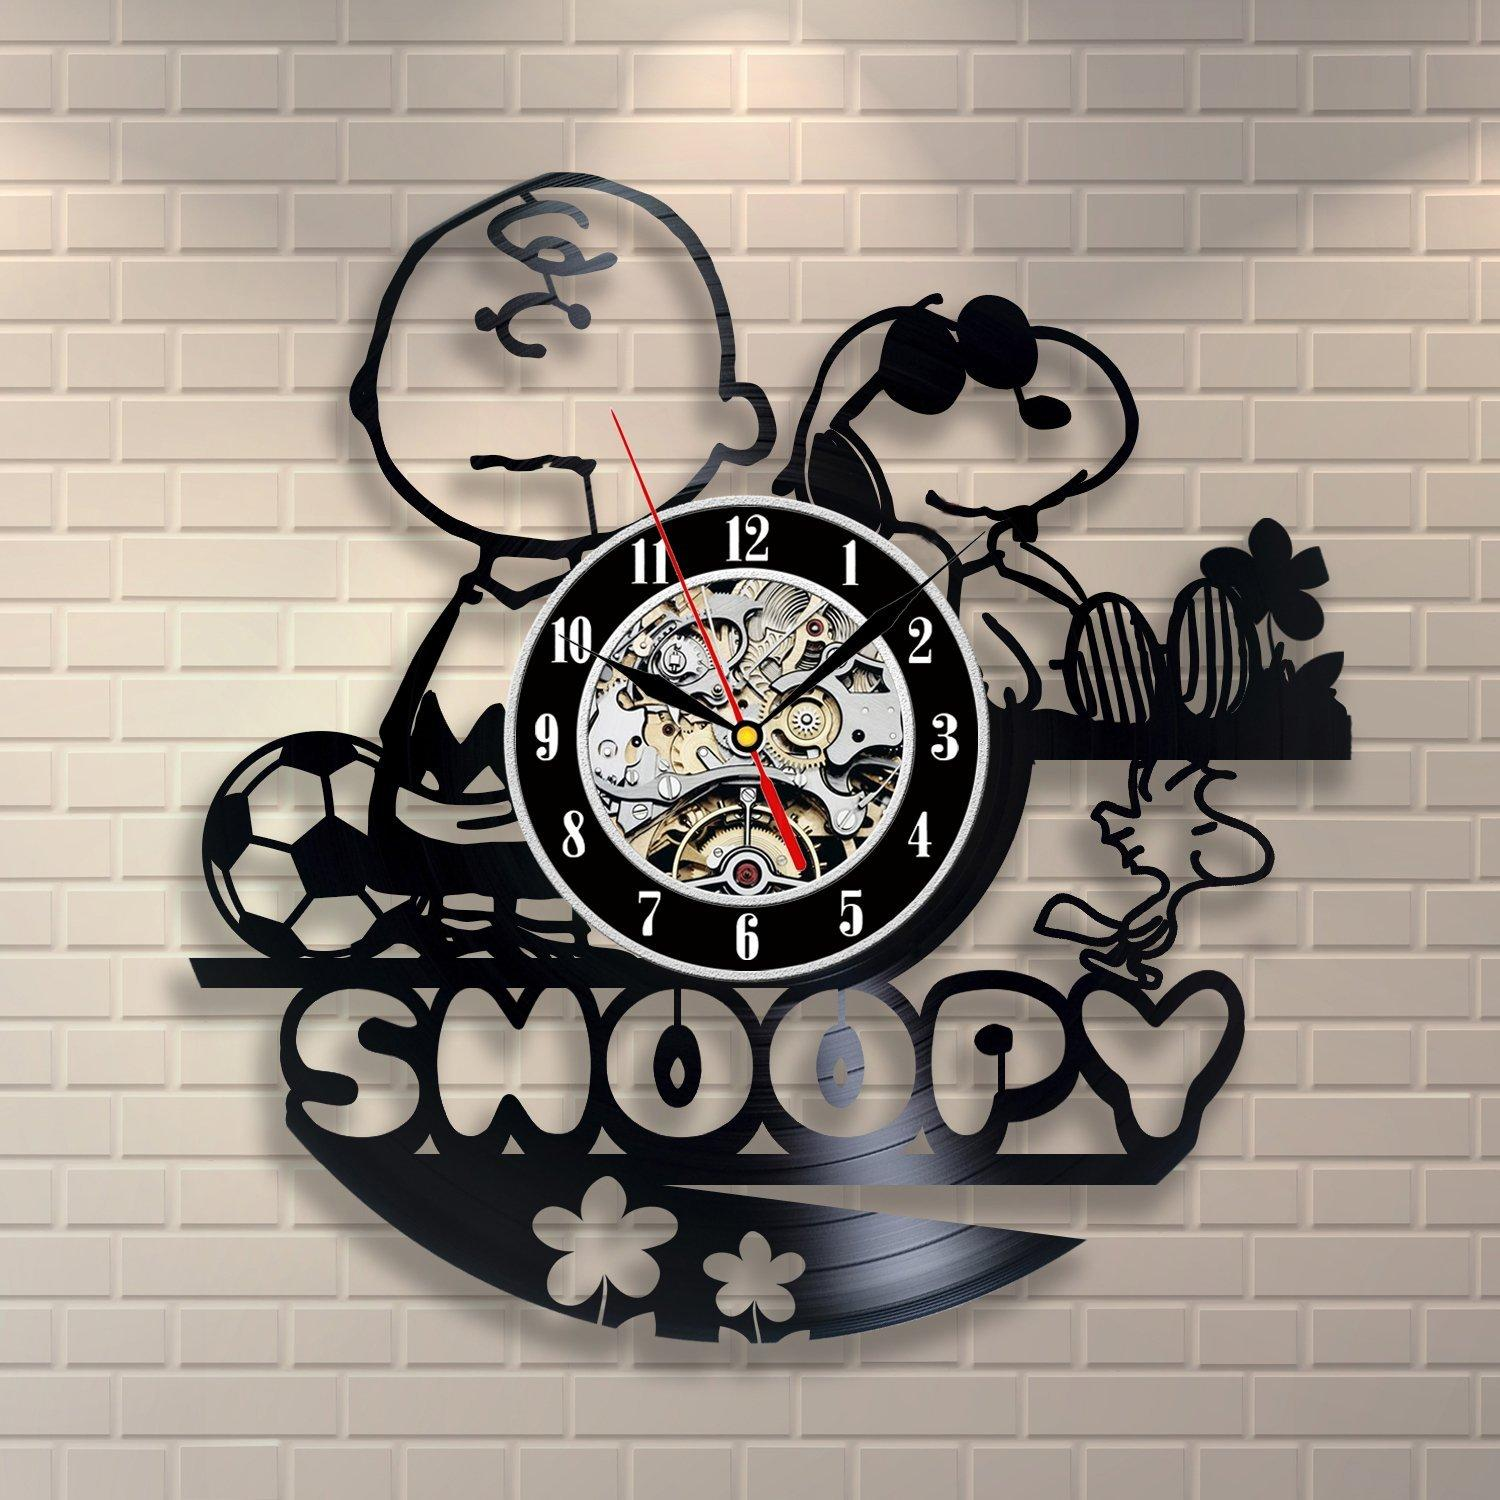 Snoopy Vintage Office Decor Vinyl Record Wall Clock Wedding